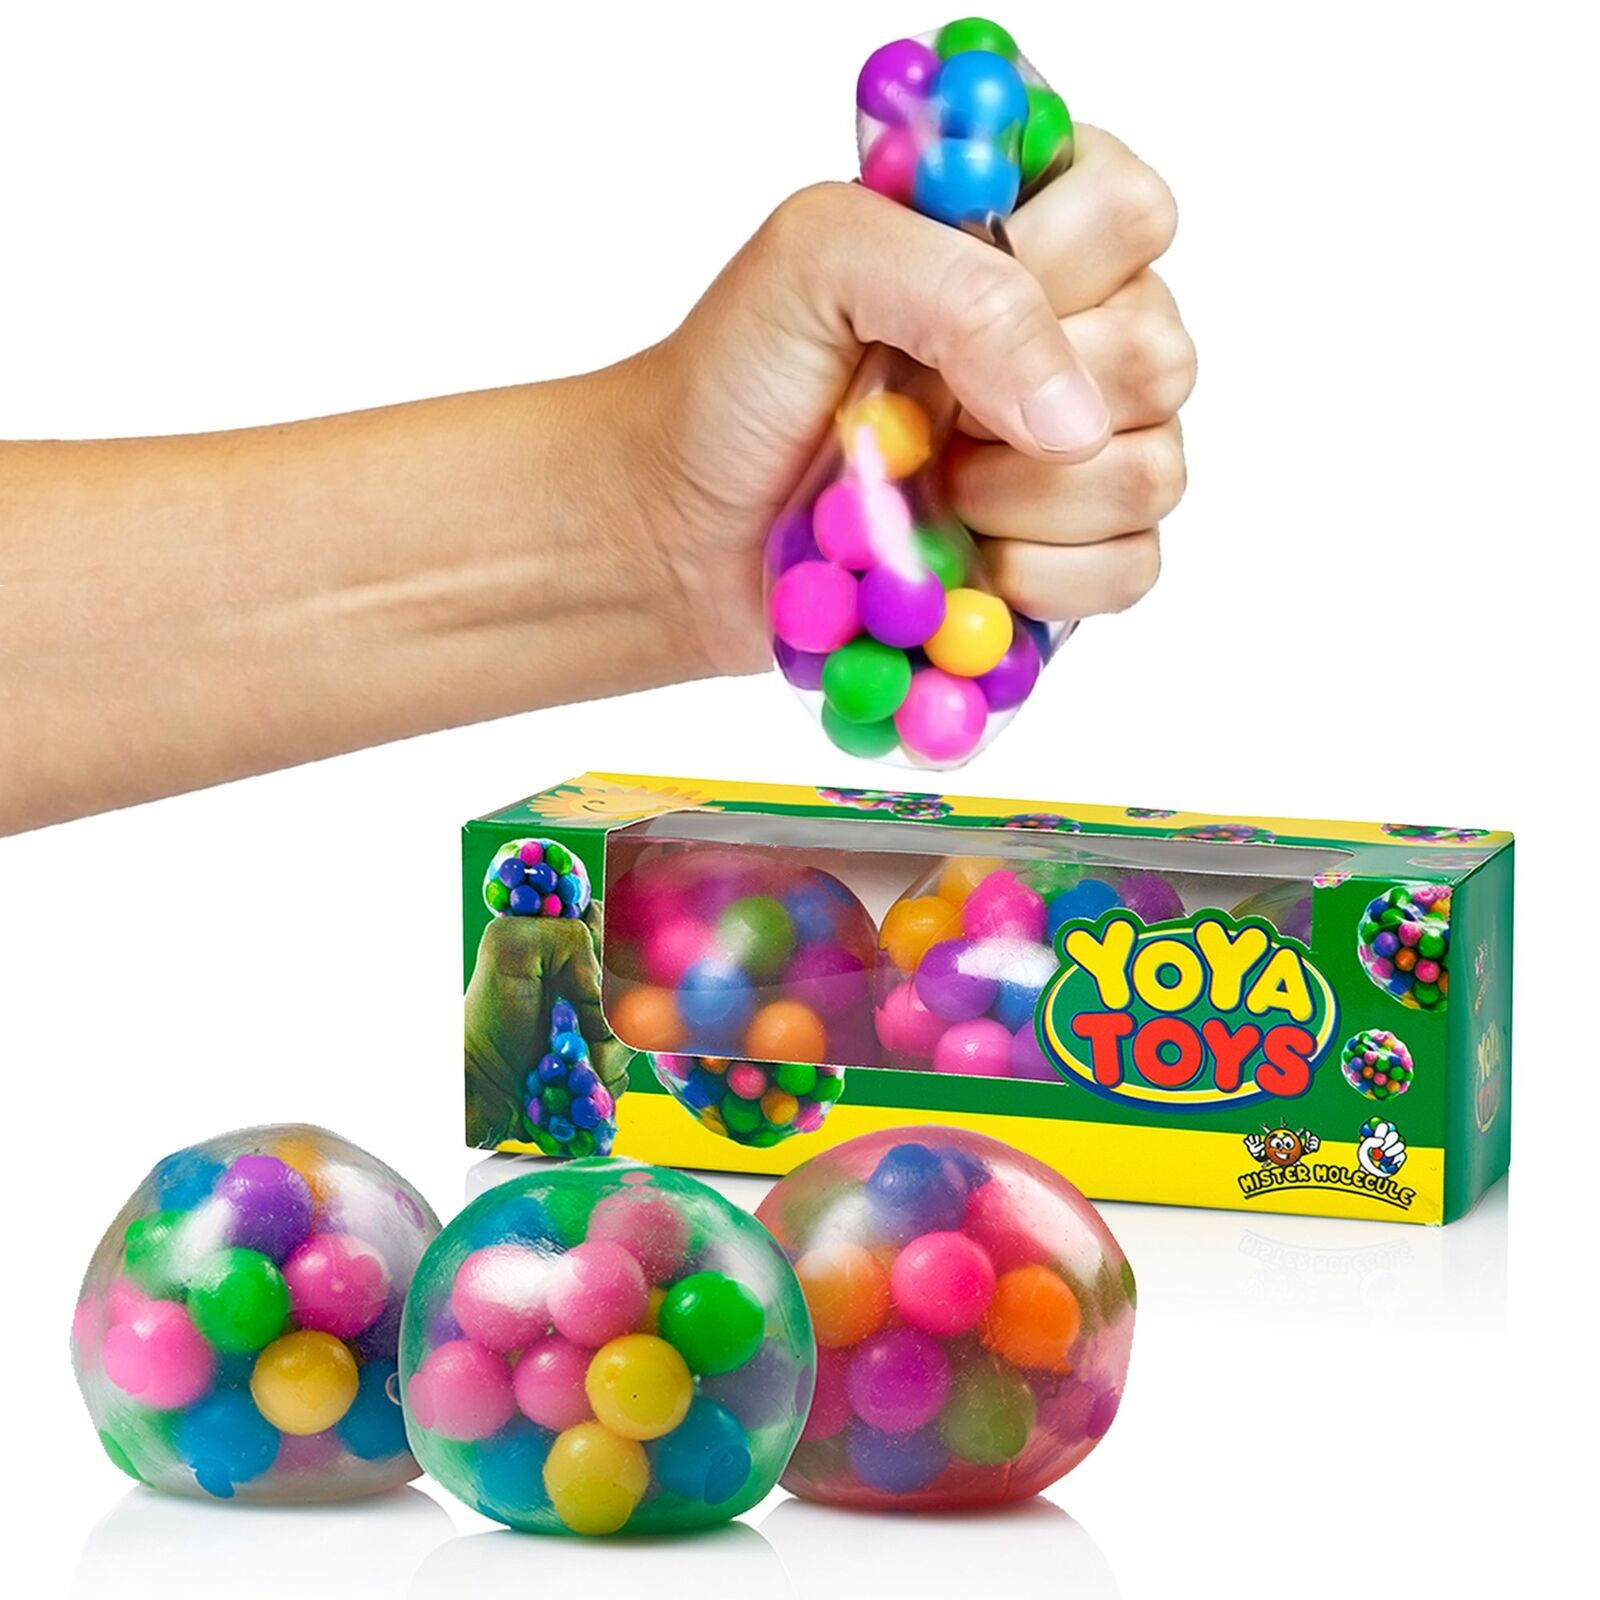 DNA Stress Toy Balls Ball by Yoya Toys Pack Squeezing Relief